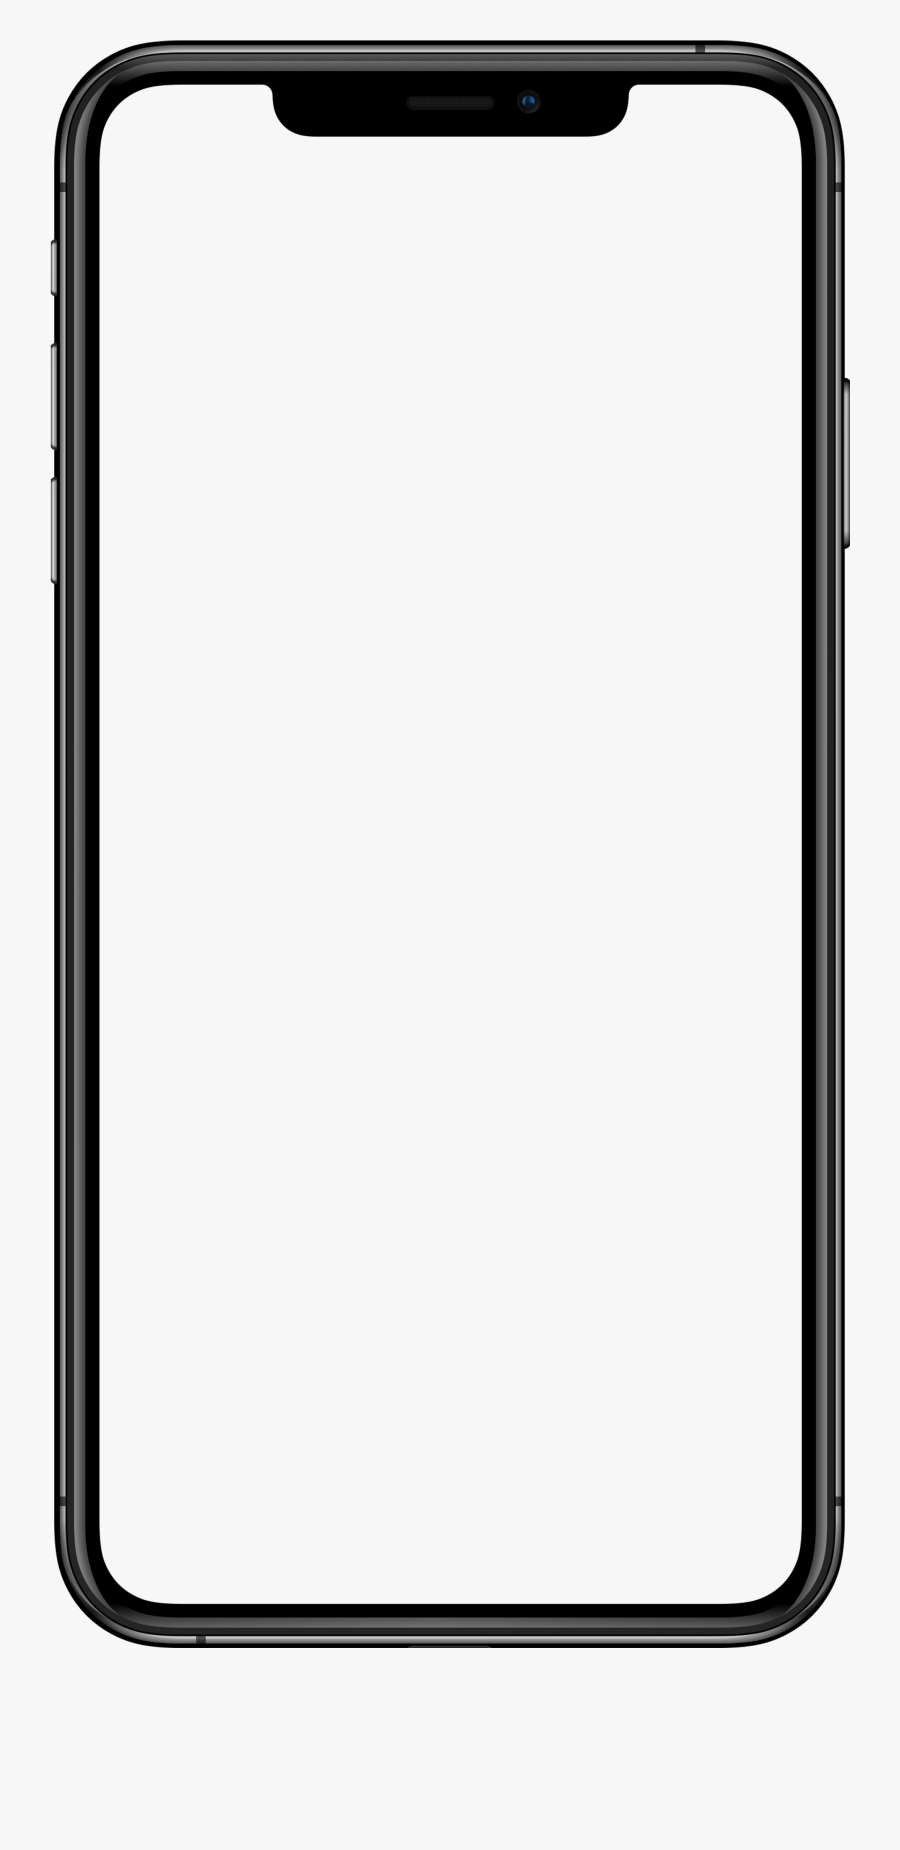 Apple Iphone Xs Max Iphone 5s Smartphone - Transparent Iphone Clipart, Transparent Clipart